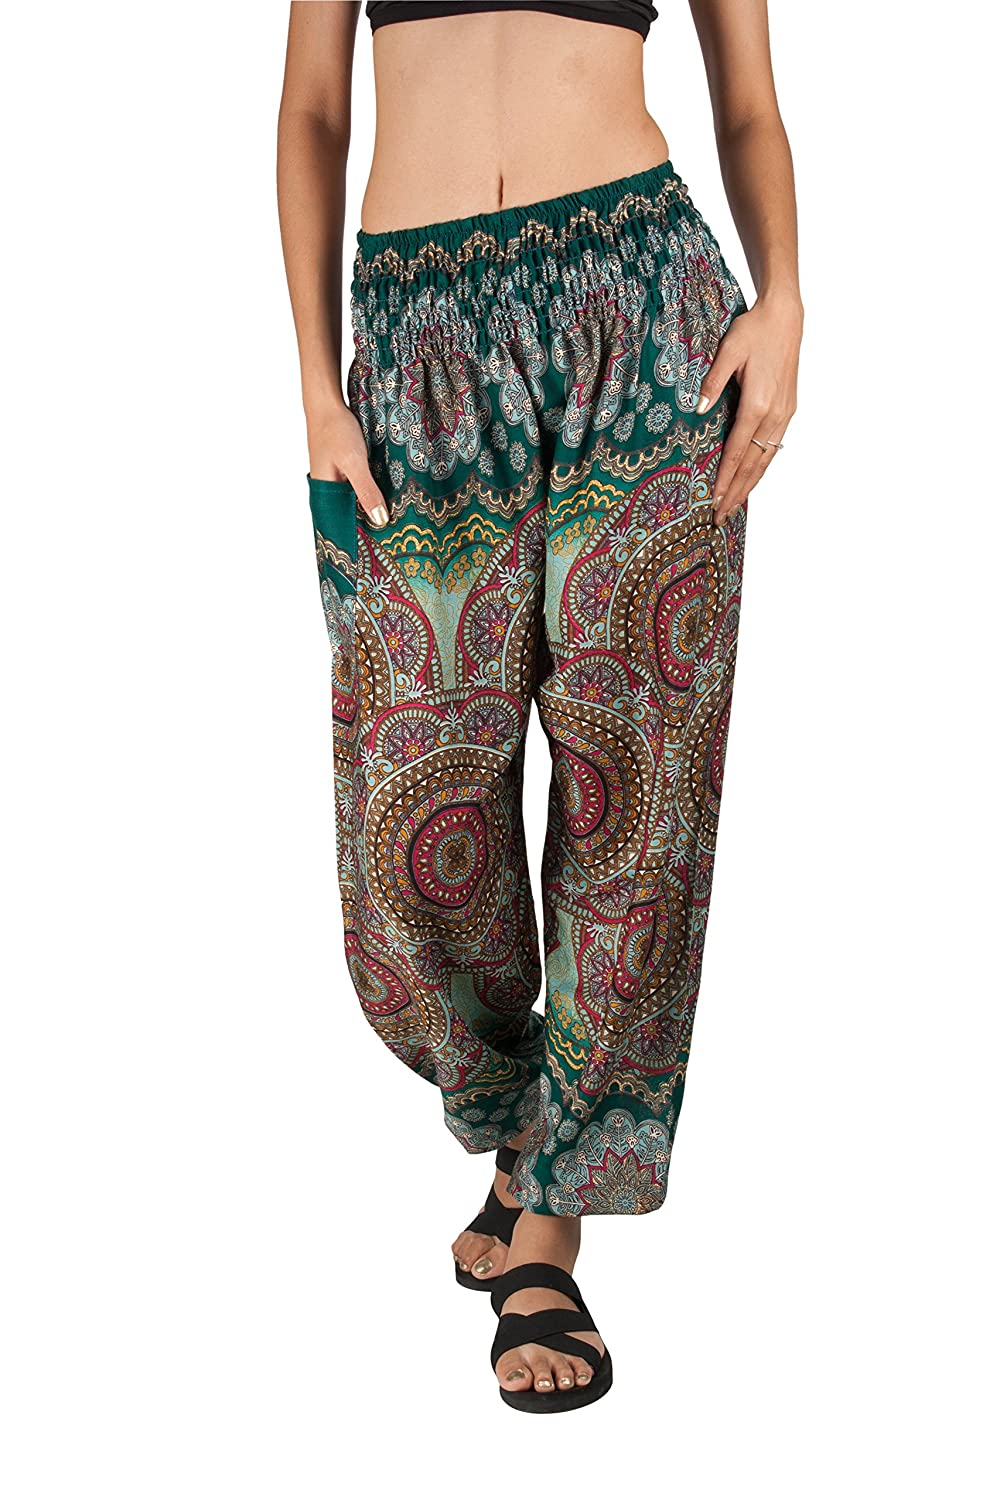 77c85c3300e63 Joop Joop Bohemian Elephant Harem Loose Yoga Travel Lounge Festival Casual  Beach Pants at Amazon Women's Clothing store: